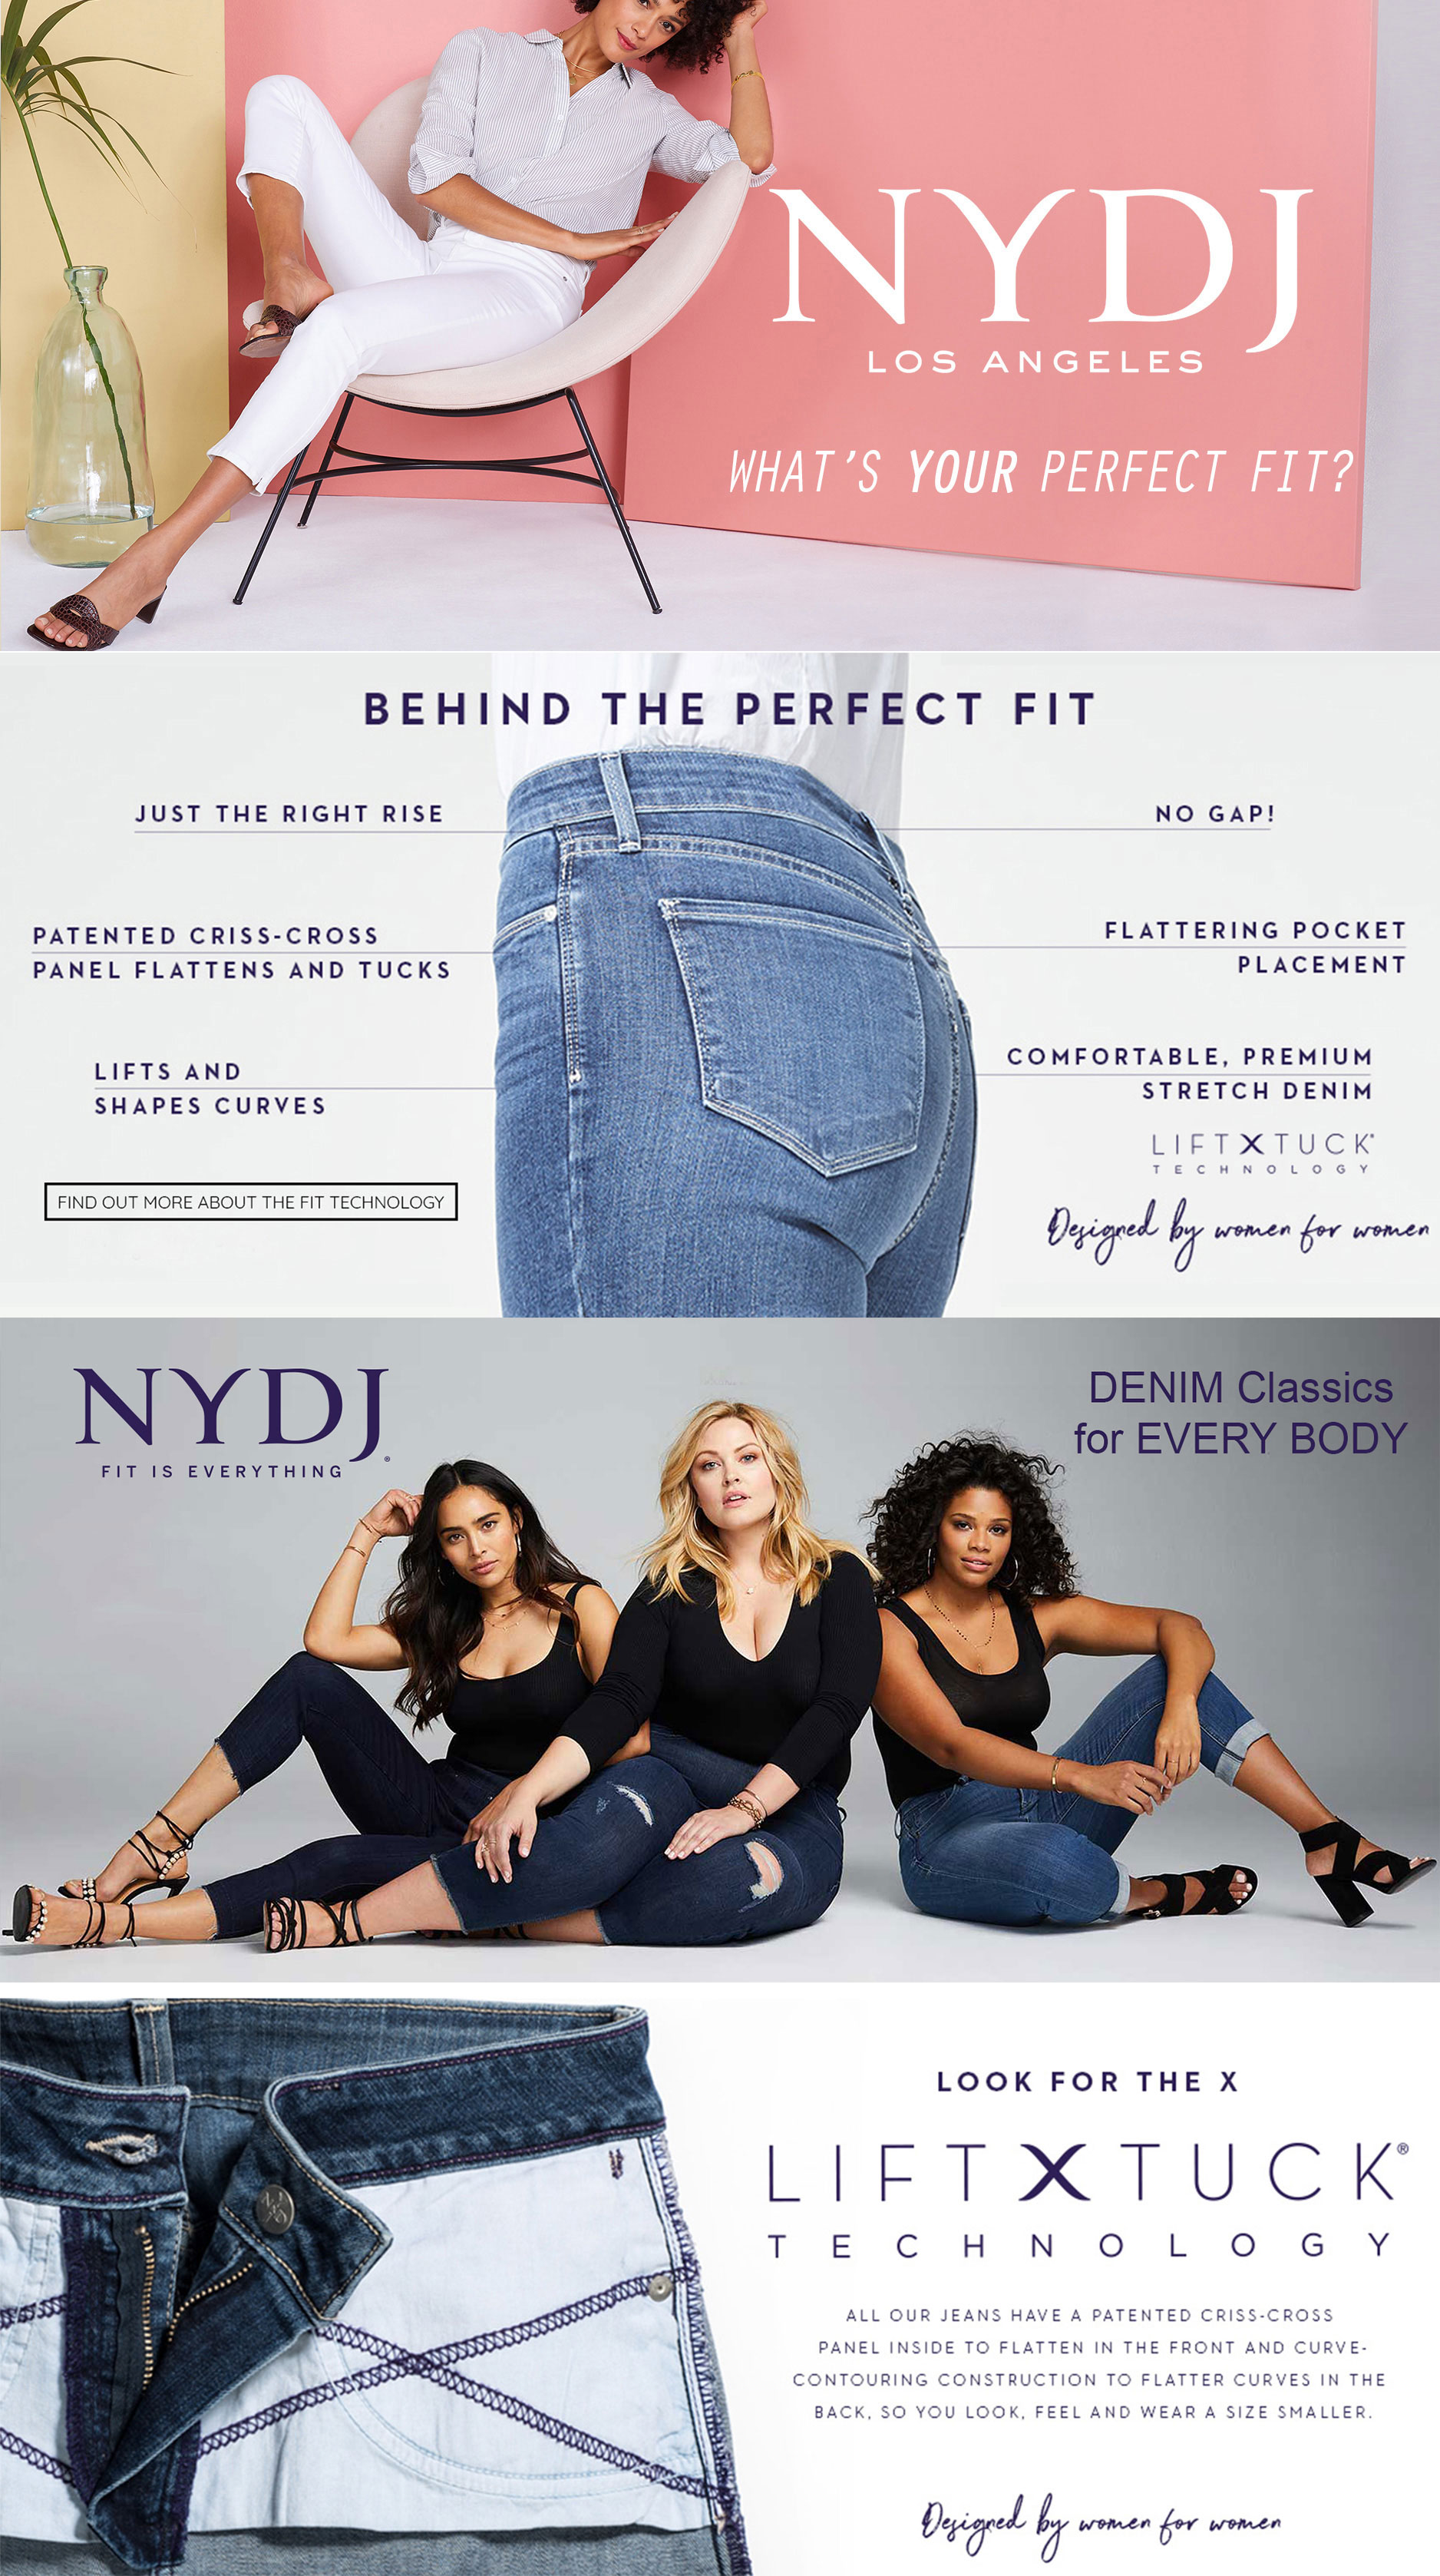 NYDJ /Not Your Daughters Jeans